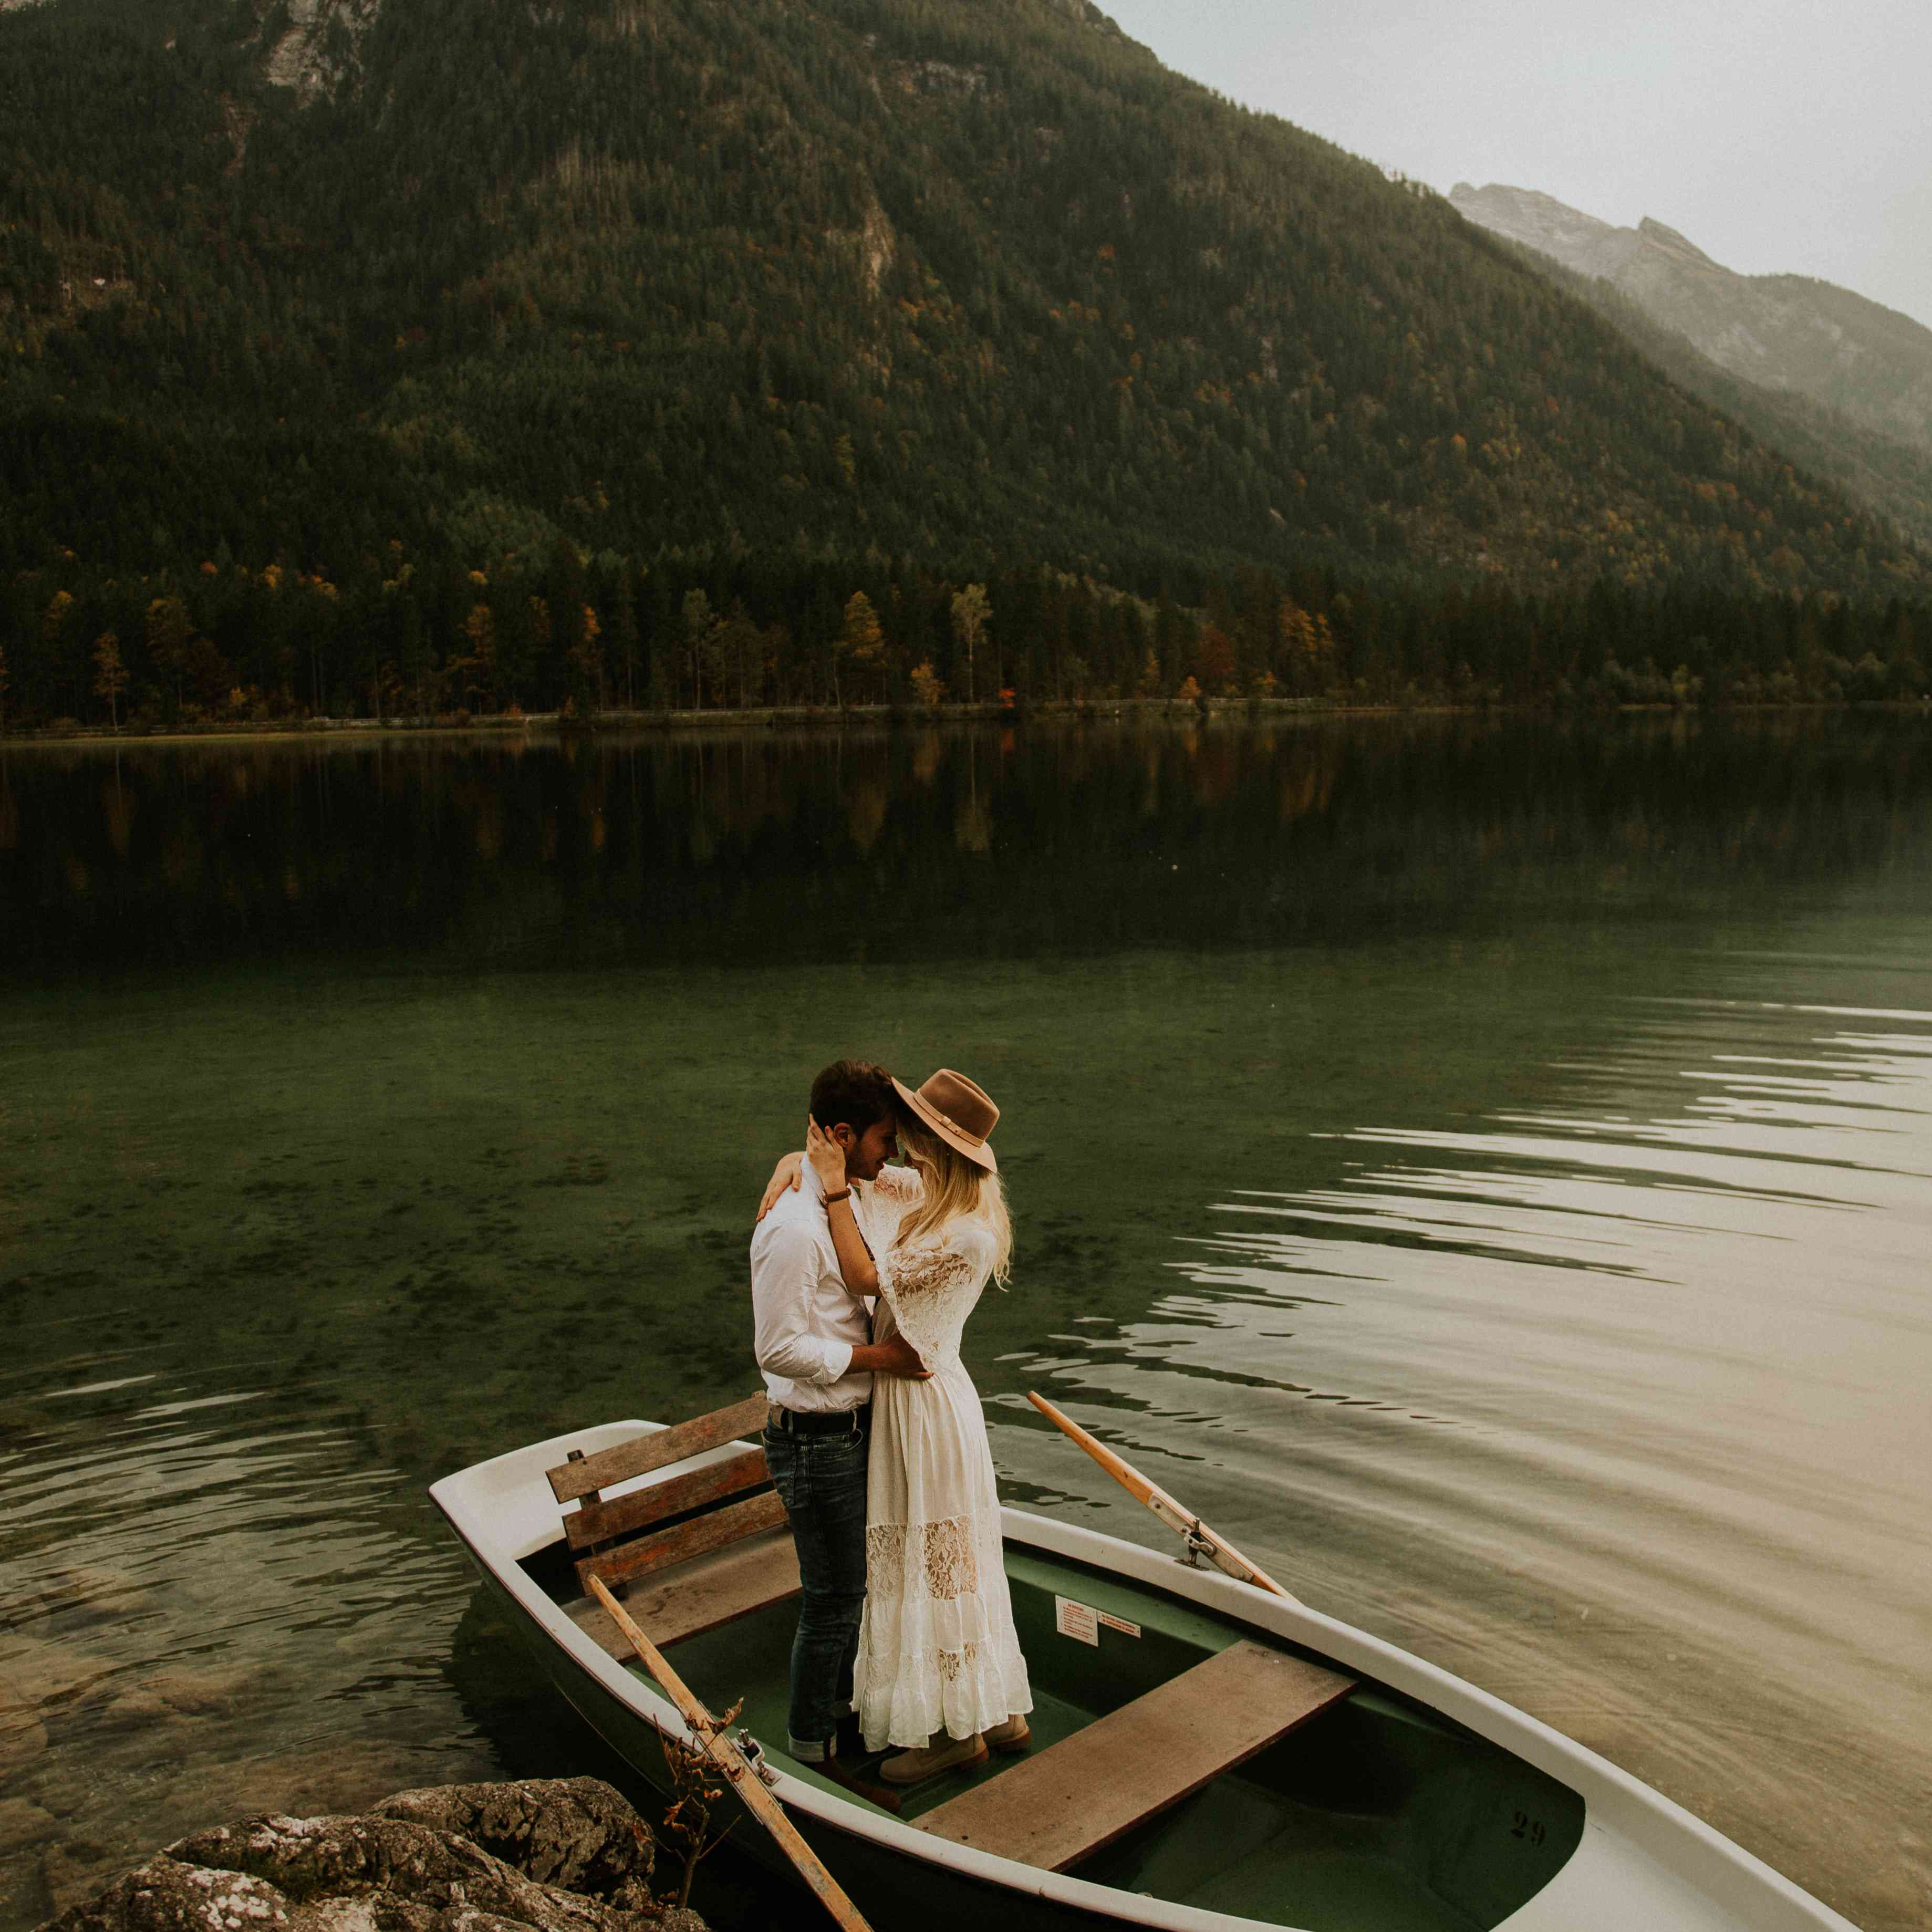 Couple kissing in a boat on a mountainside lake